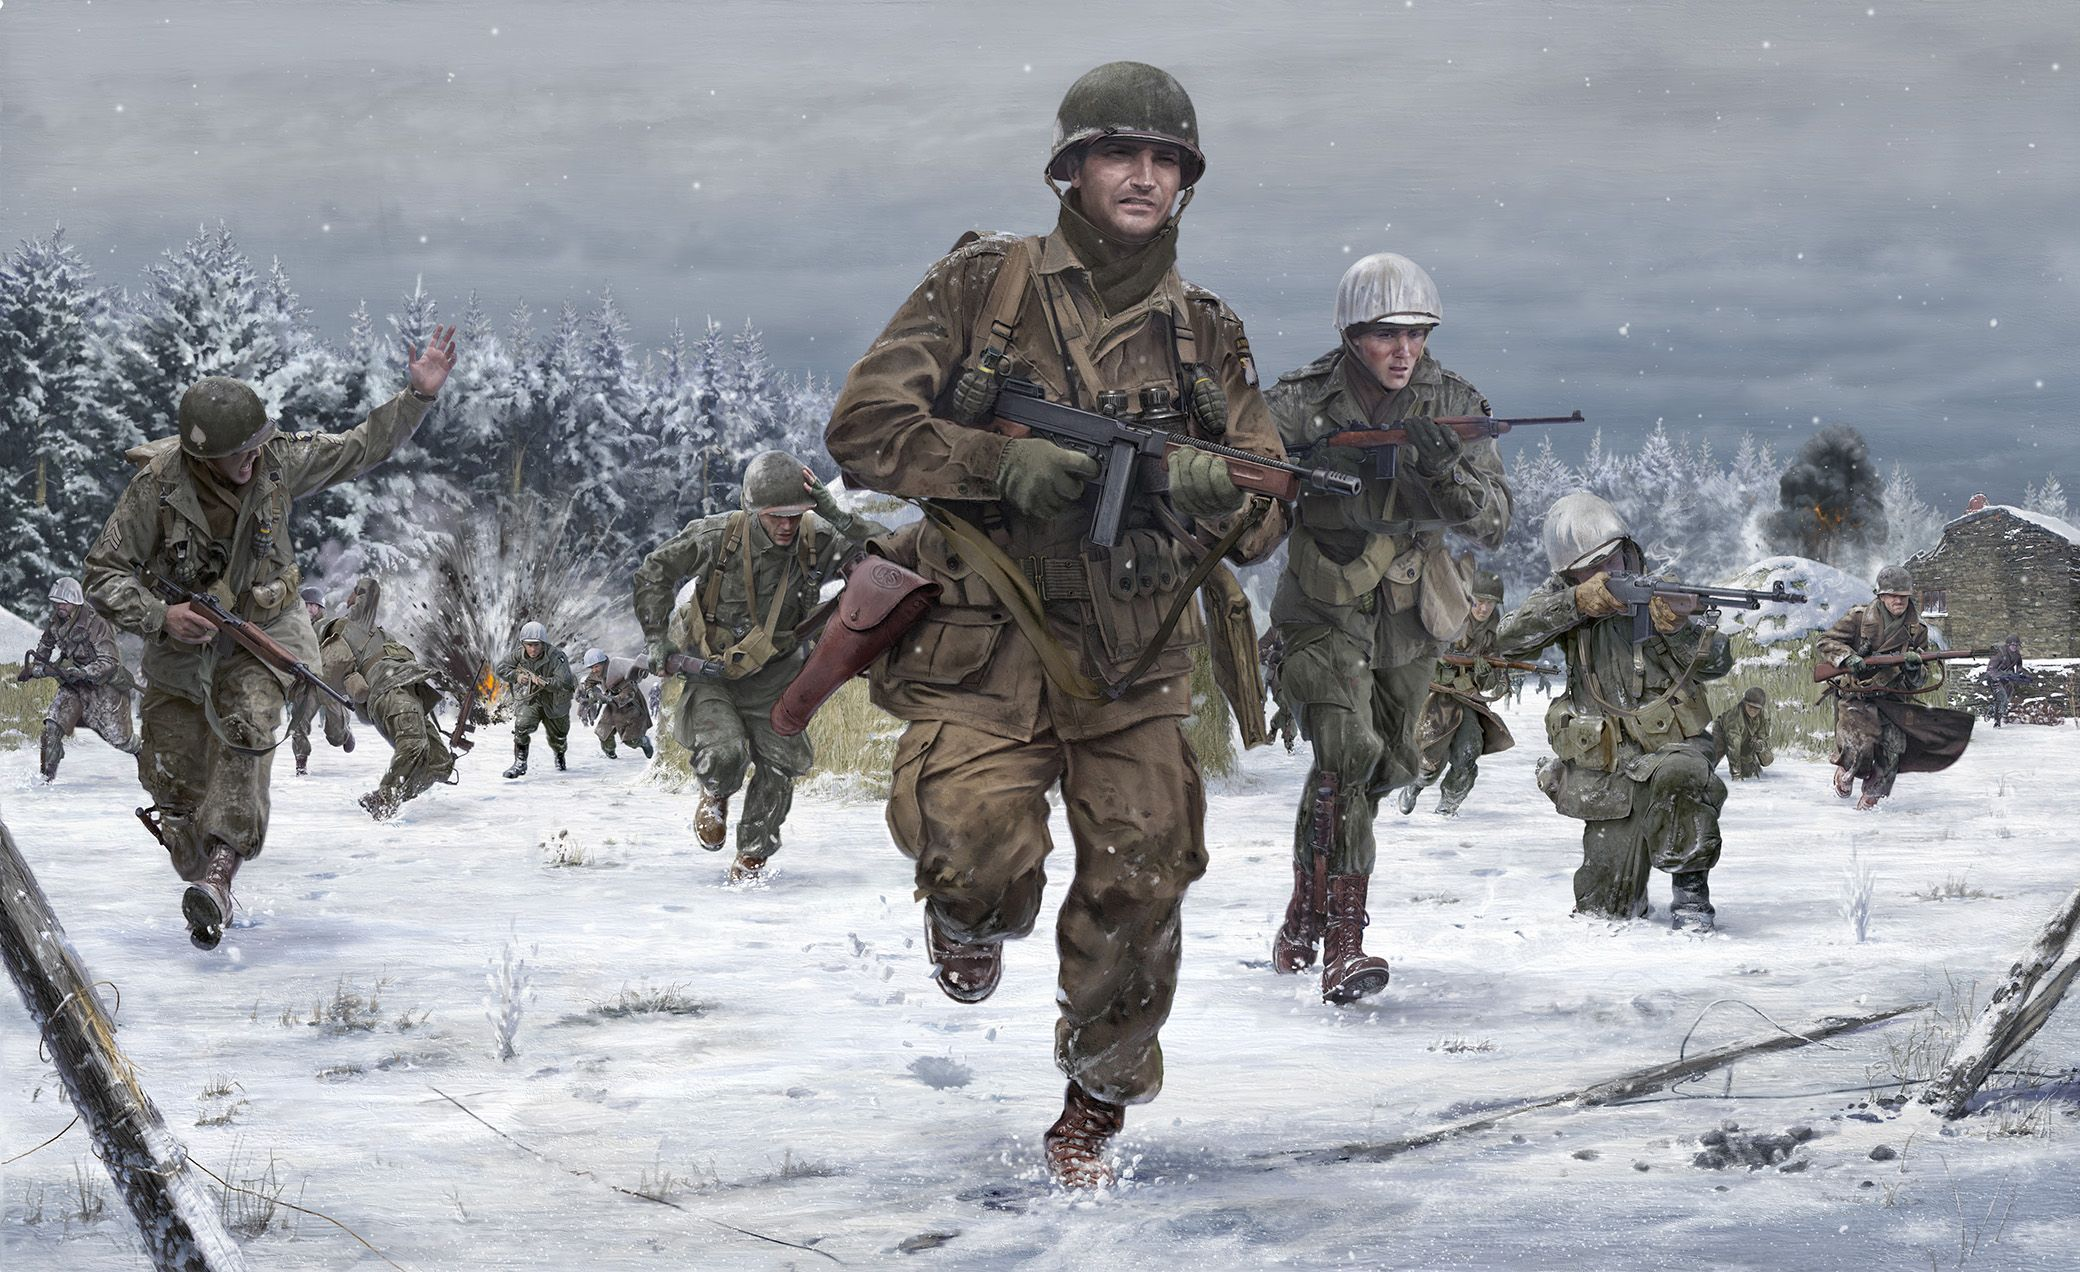 Day reenactment ww ii pictures pinterest - Taking The Town Of Foy Battle Of The Bulge